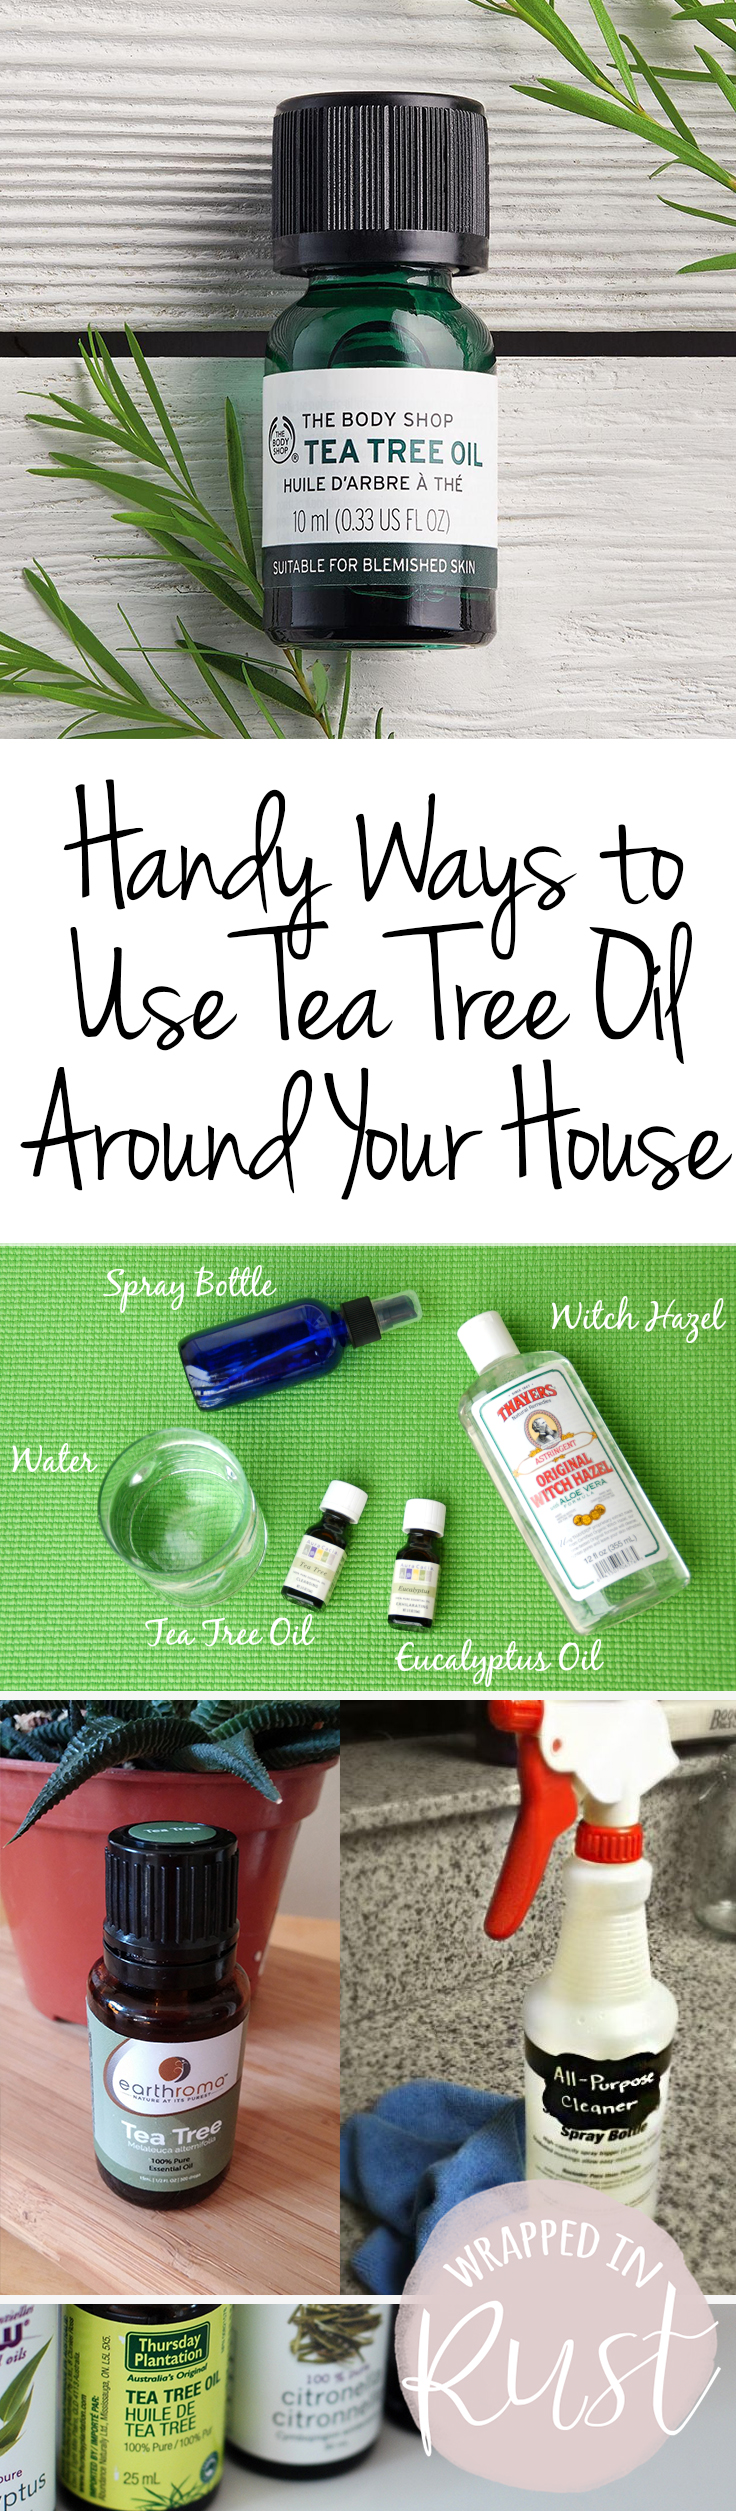 Handy Ways to Use Tea Tree Oil Around Your House| Tea Tree Oil, How to Use Tea Tree Oil Around the Home, Cleaning With Essential Oils, How to Clean, Cleaning Hacks, Cleaning Tips and Tricks, Uses for Tea Tree Oil, Popular Pin